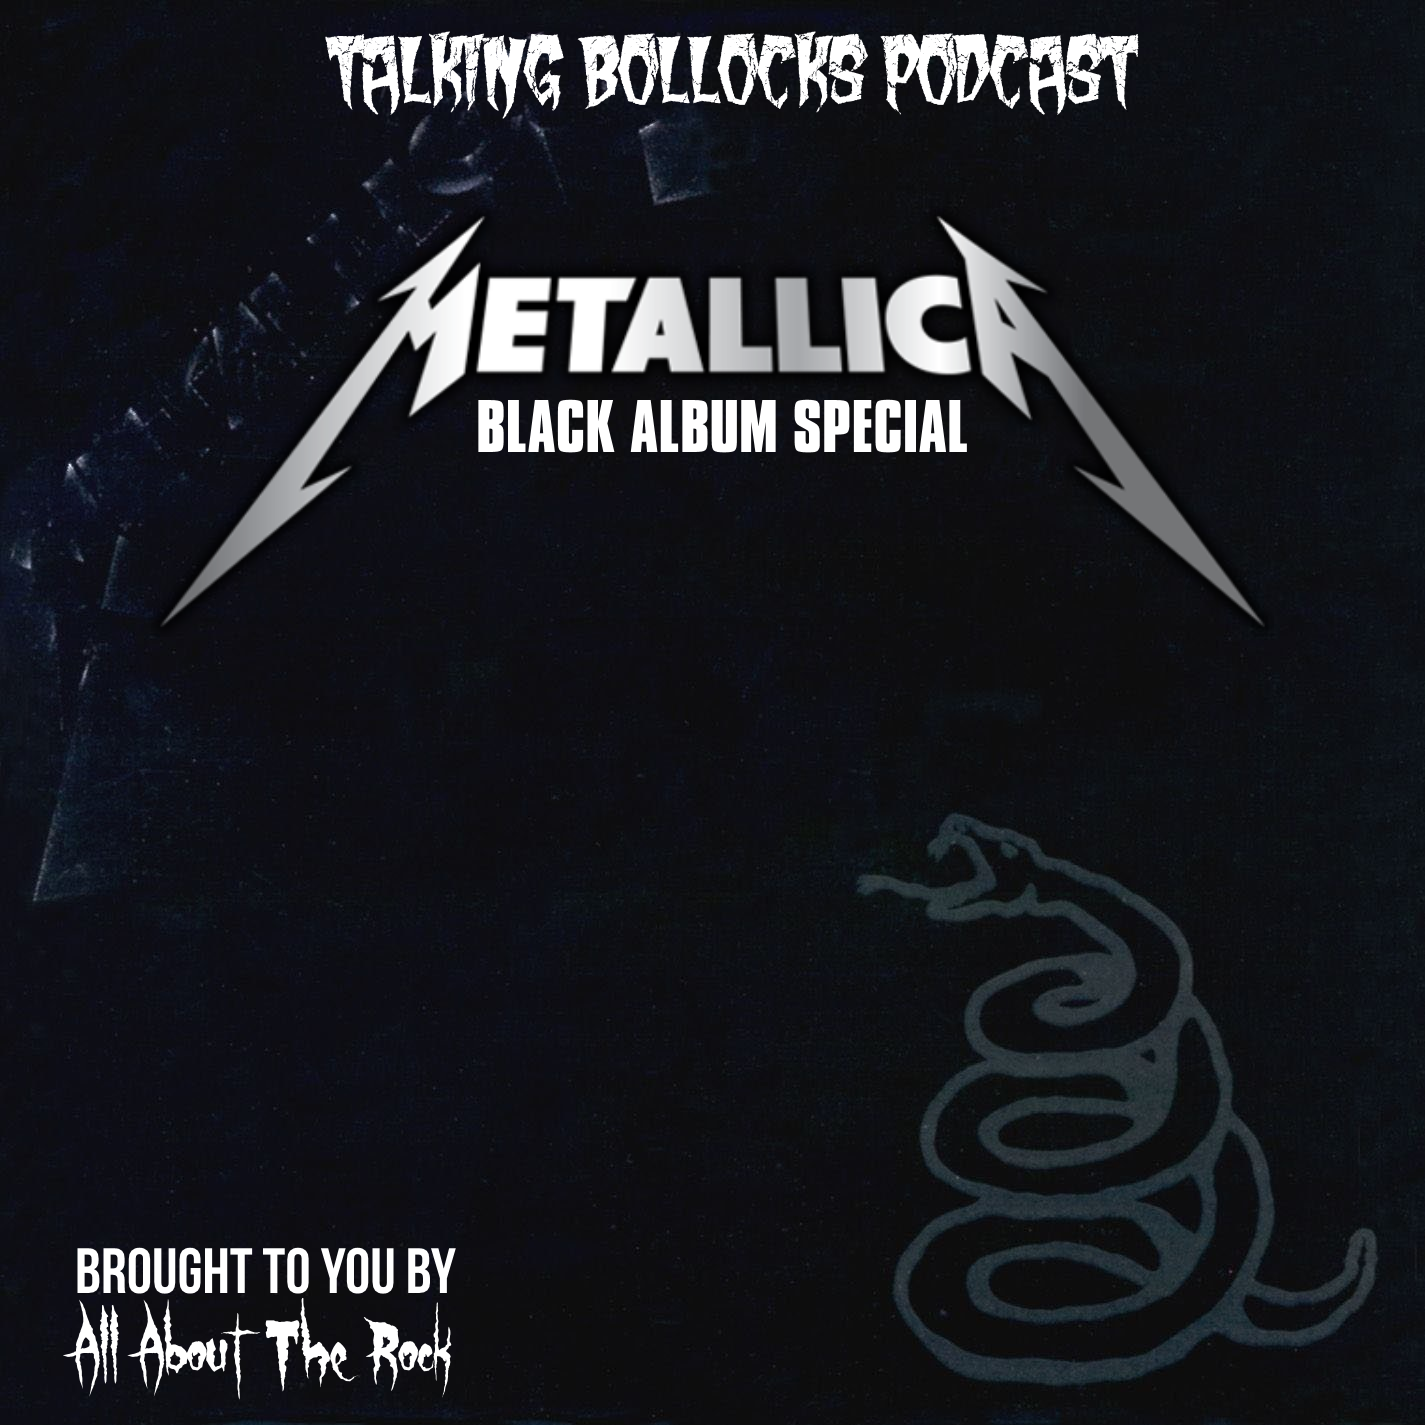 Bonus Episode: Metallica Black Album Special With David Masciotra